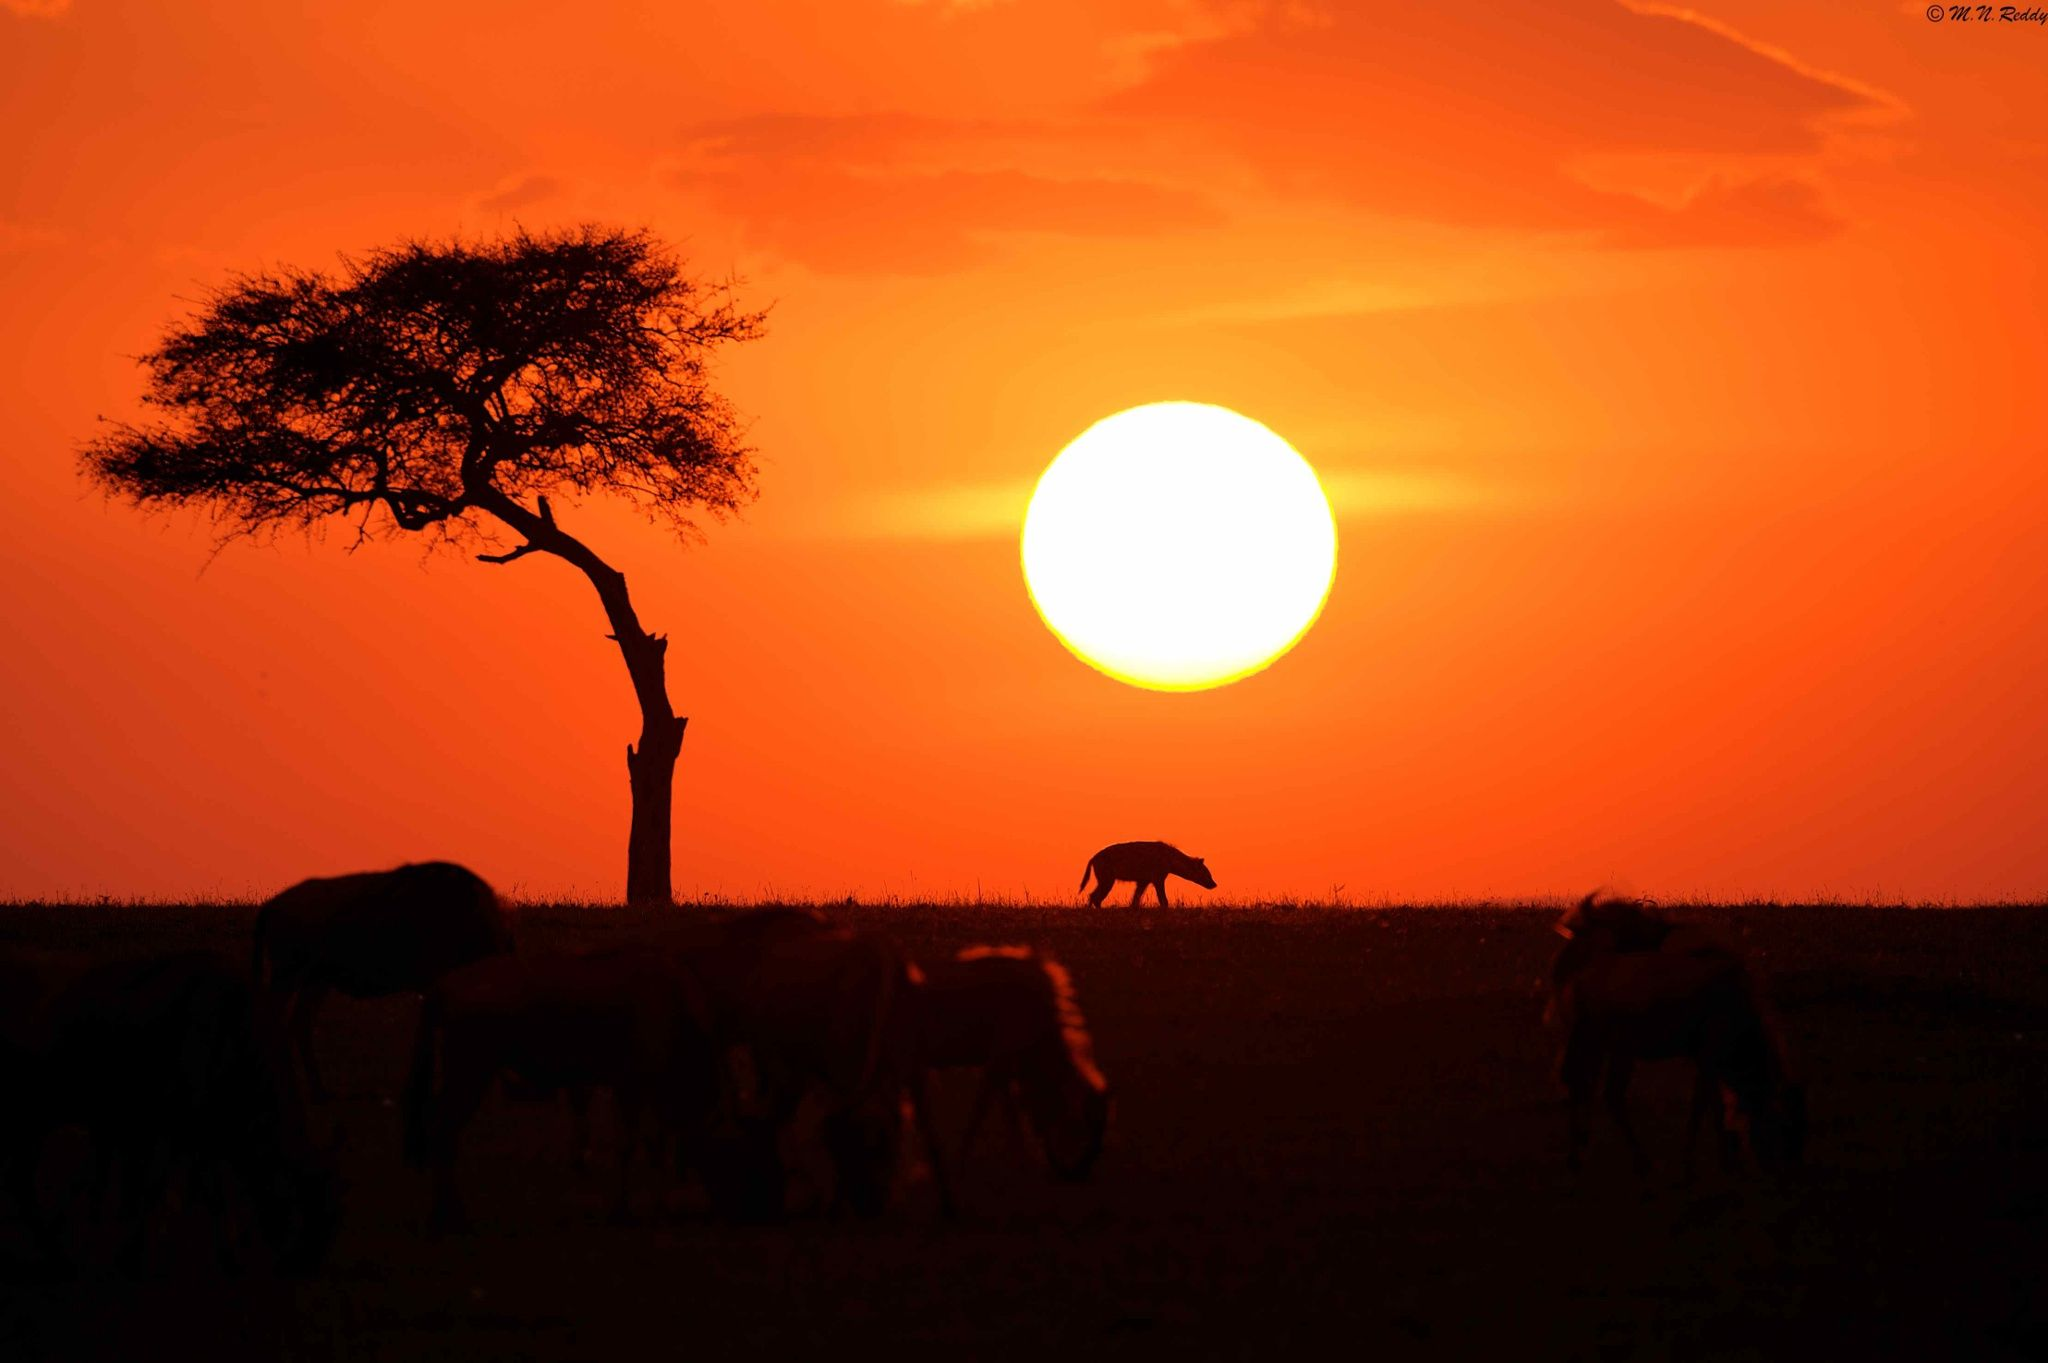 African Sunset - Sunsetting in Masai Mara ( Hyena & Wildebeests )